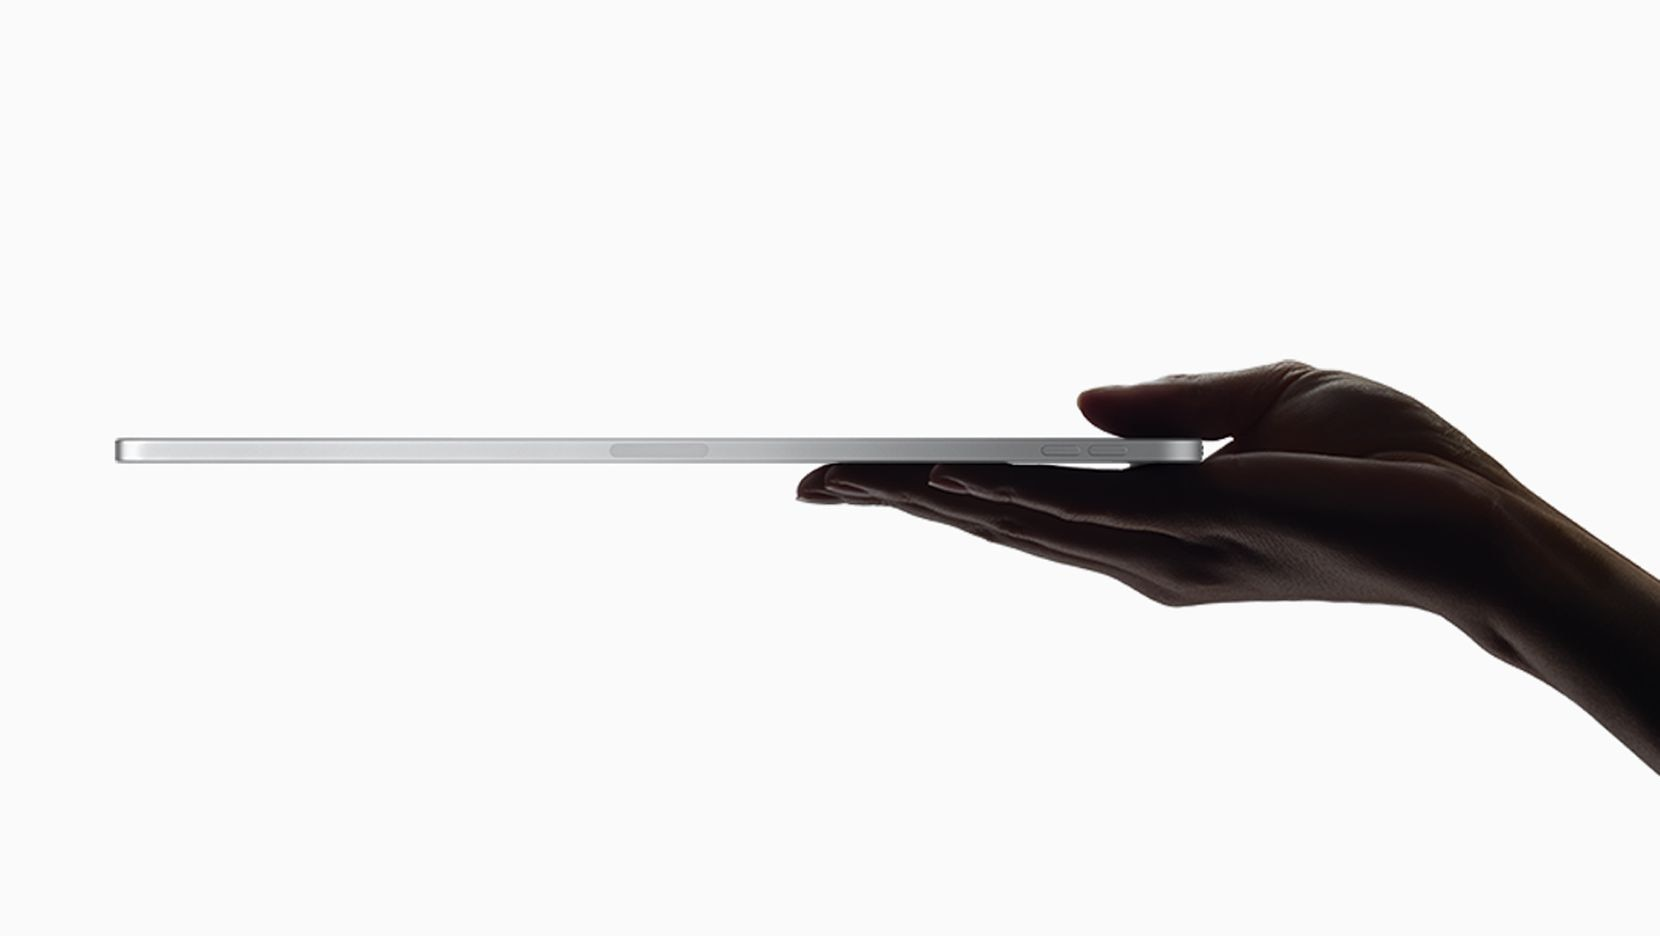 The new iPad Pro's case is squared-off aluminum that's really easy to hold.